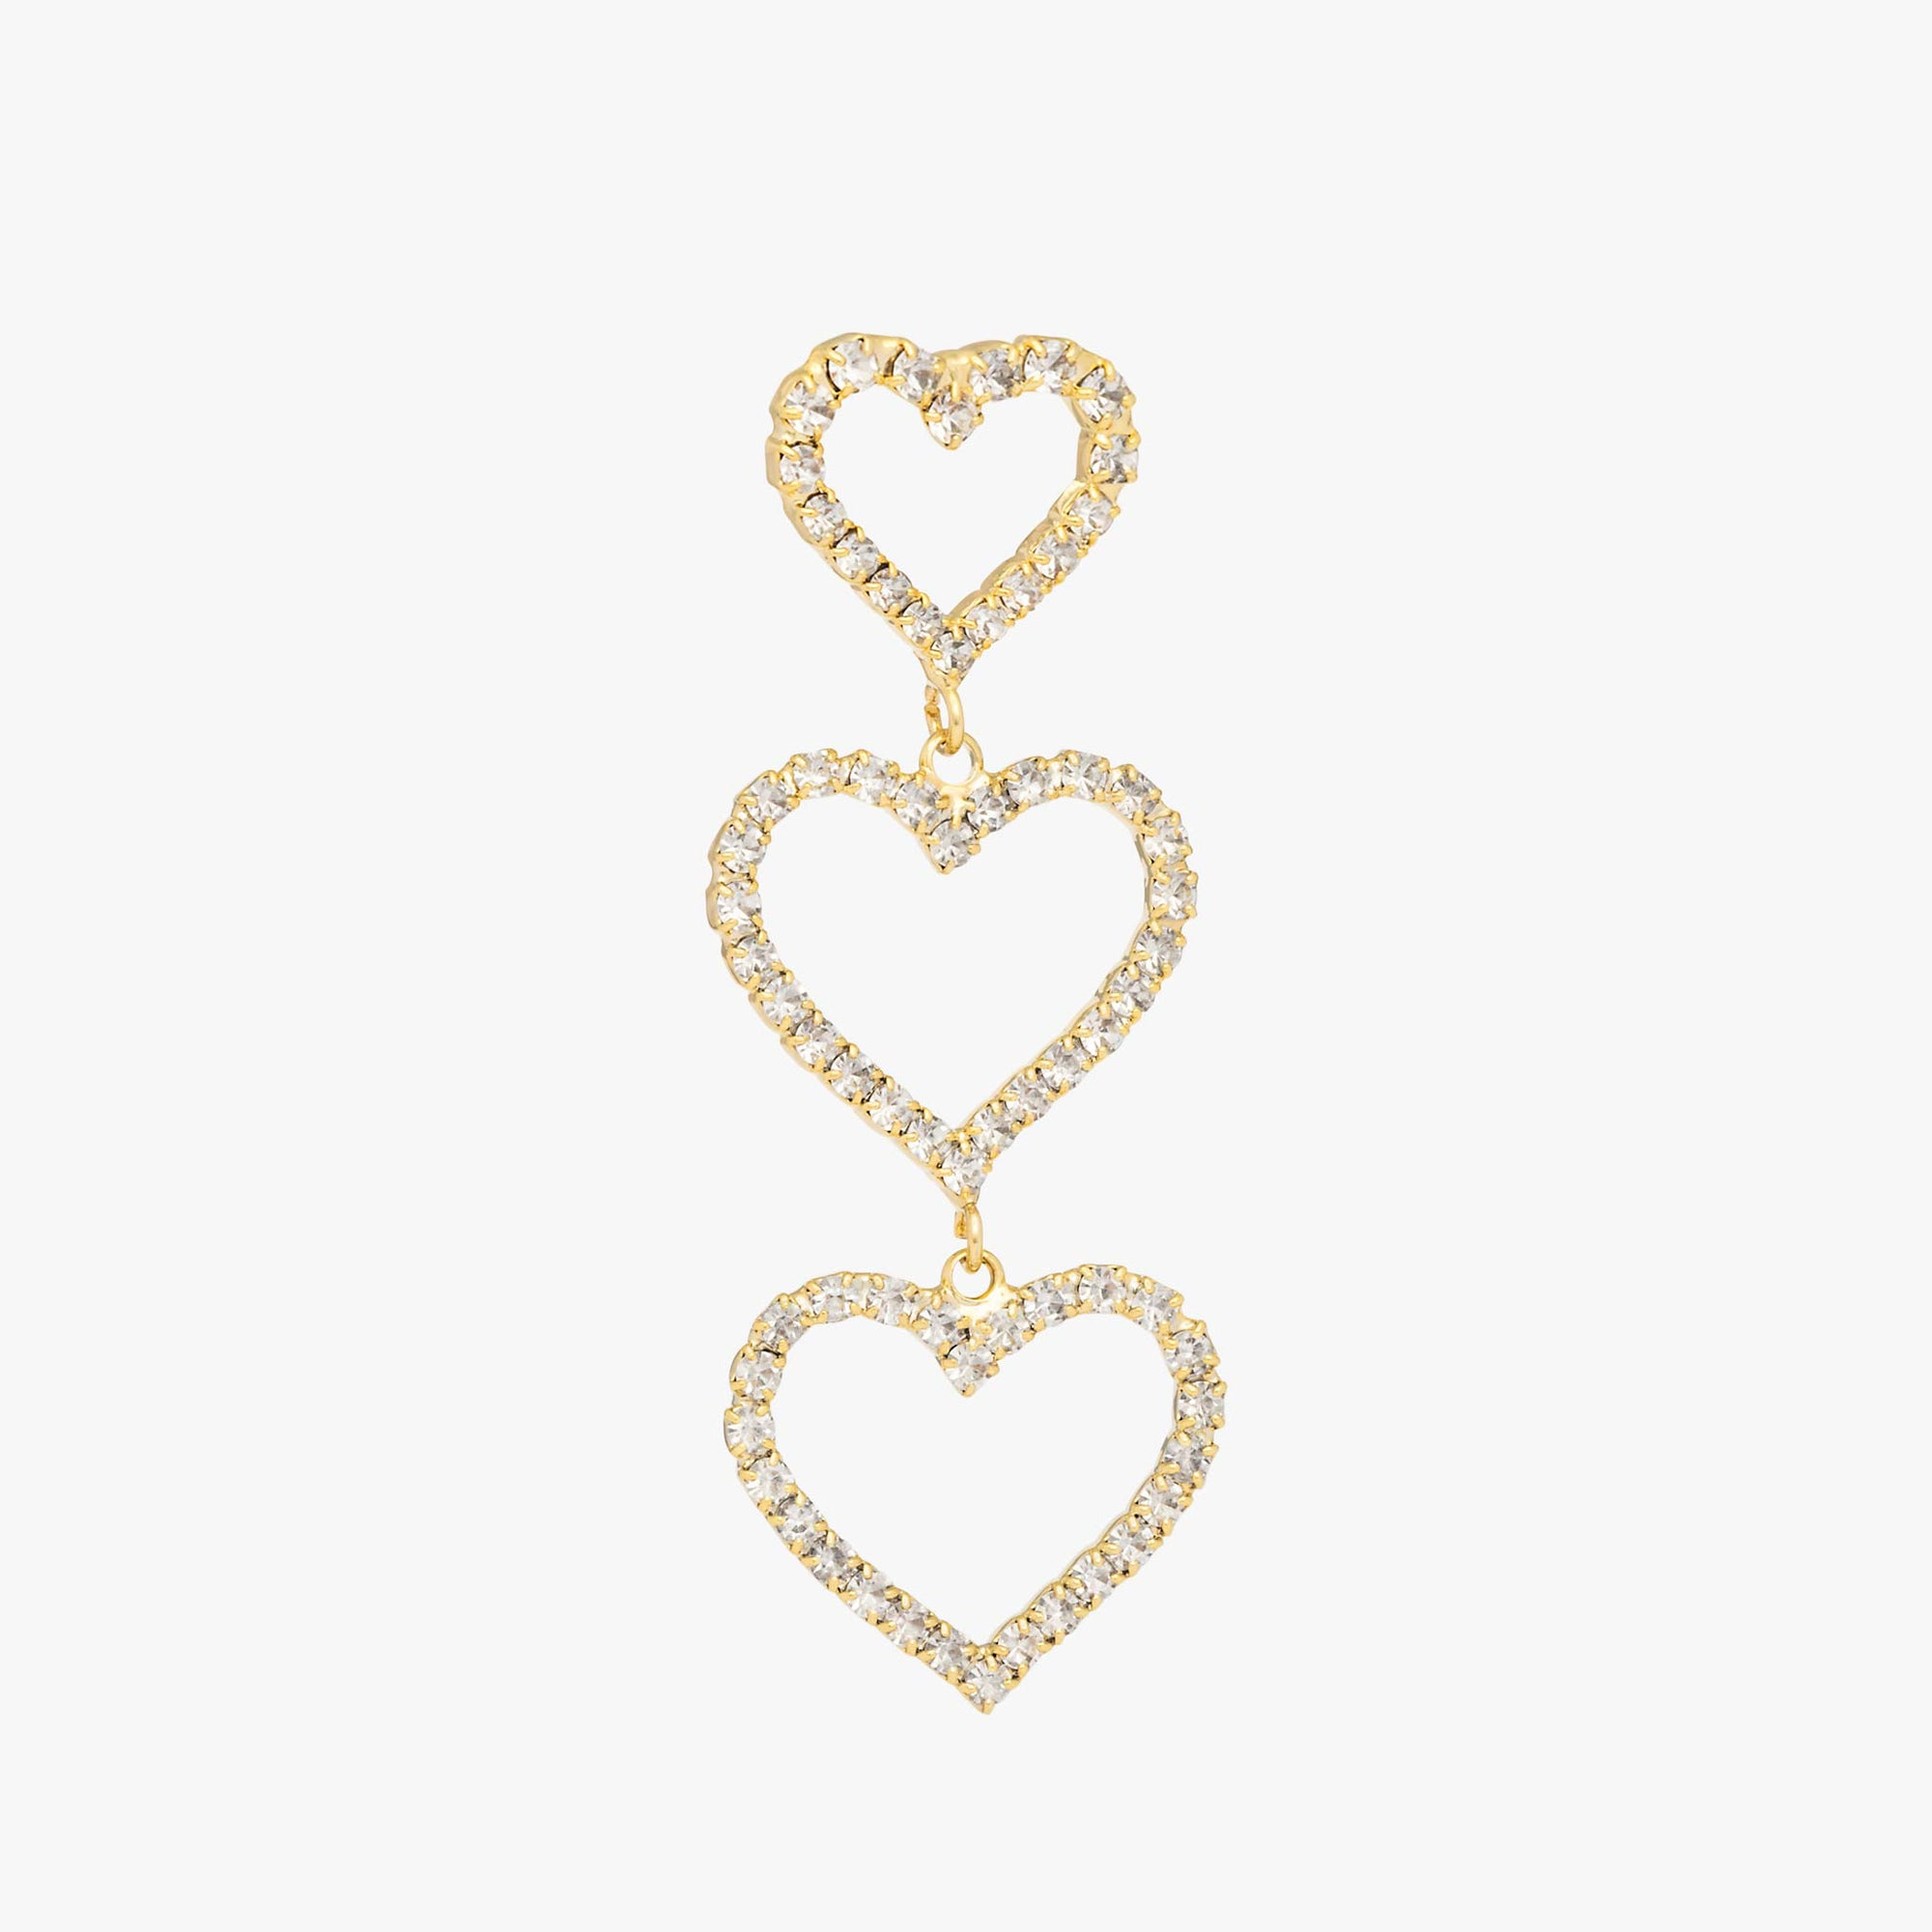 Three gold pavé cut out hearts stacked vertically in a drop.